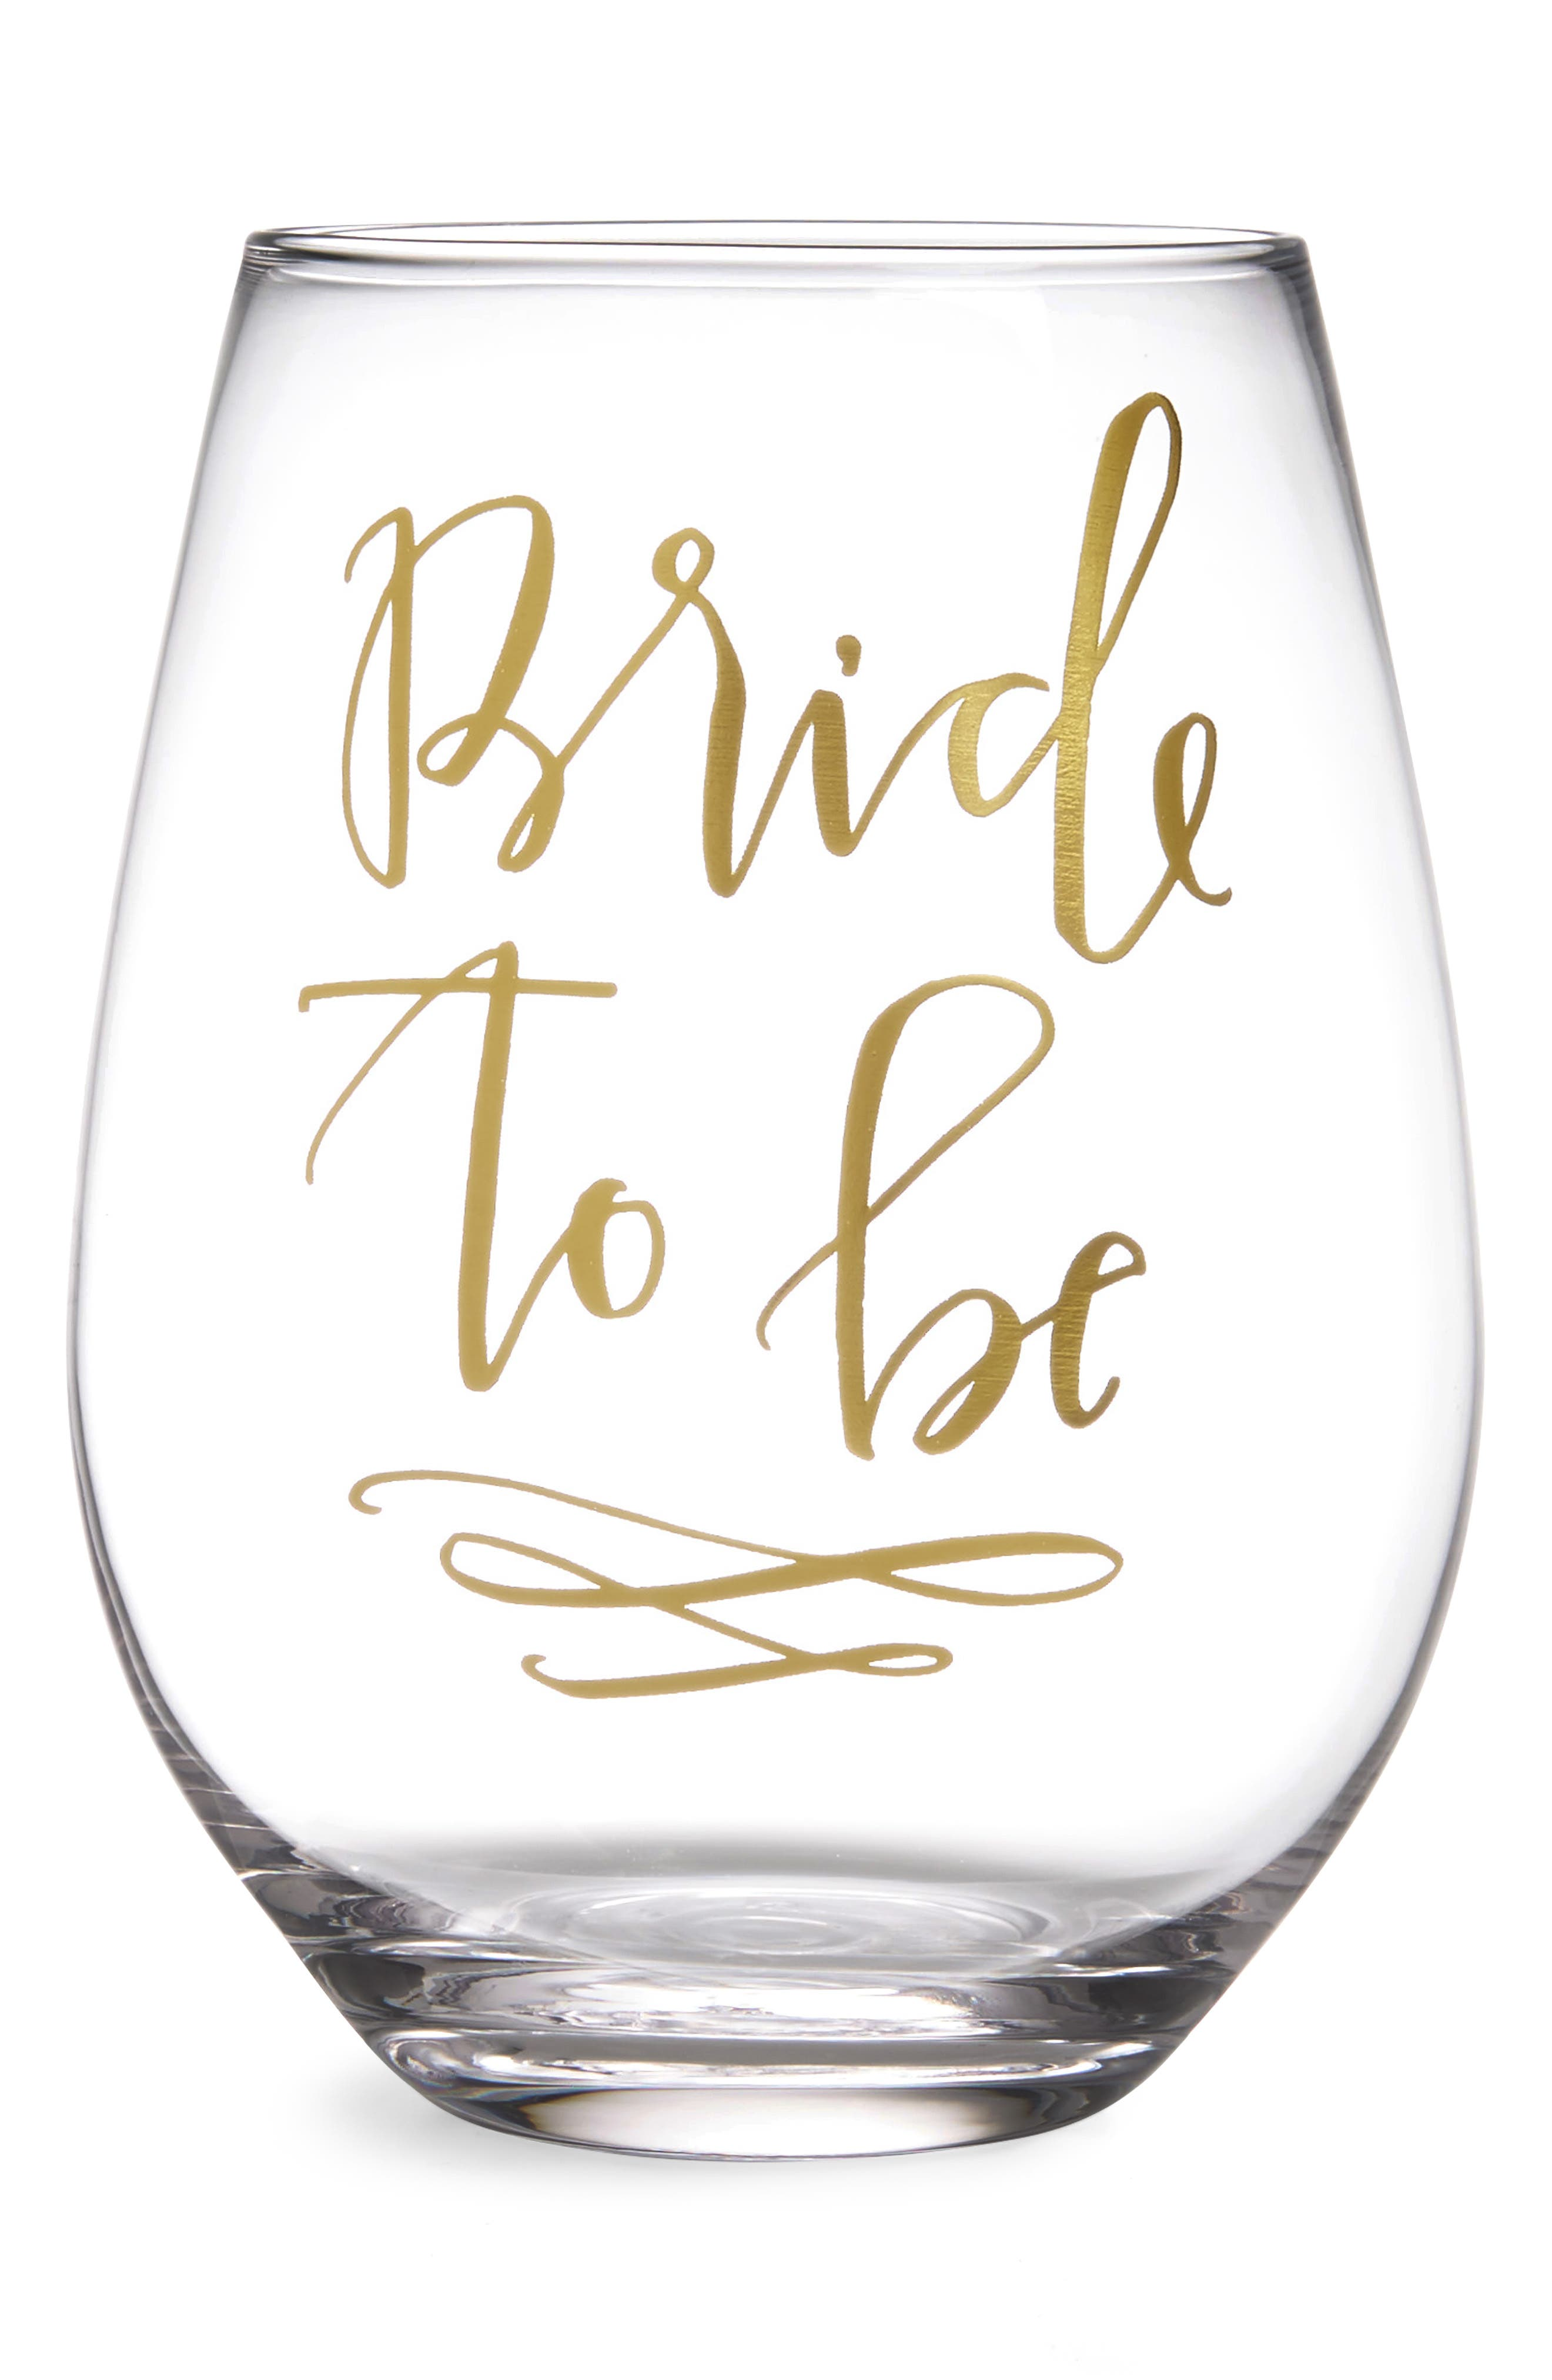 Bride To Be Stemless Wine Glass,                             Main thumbnail 1, color,                             100